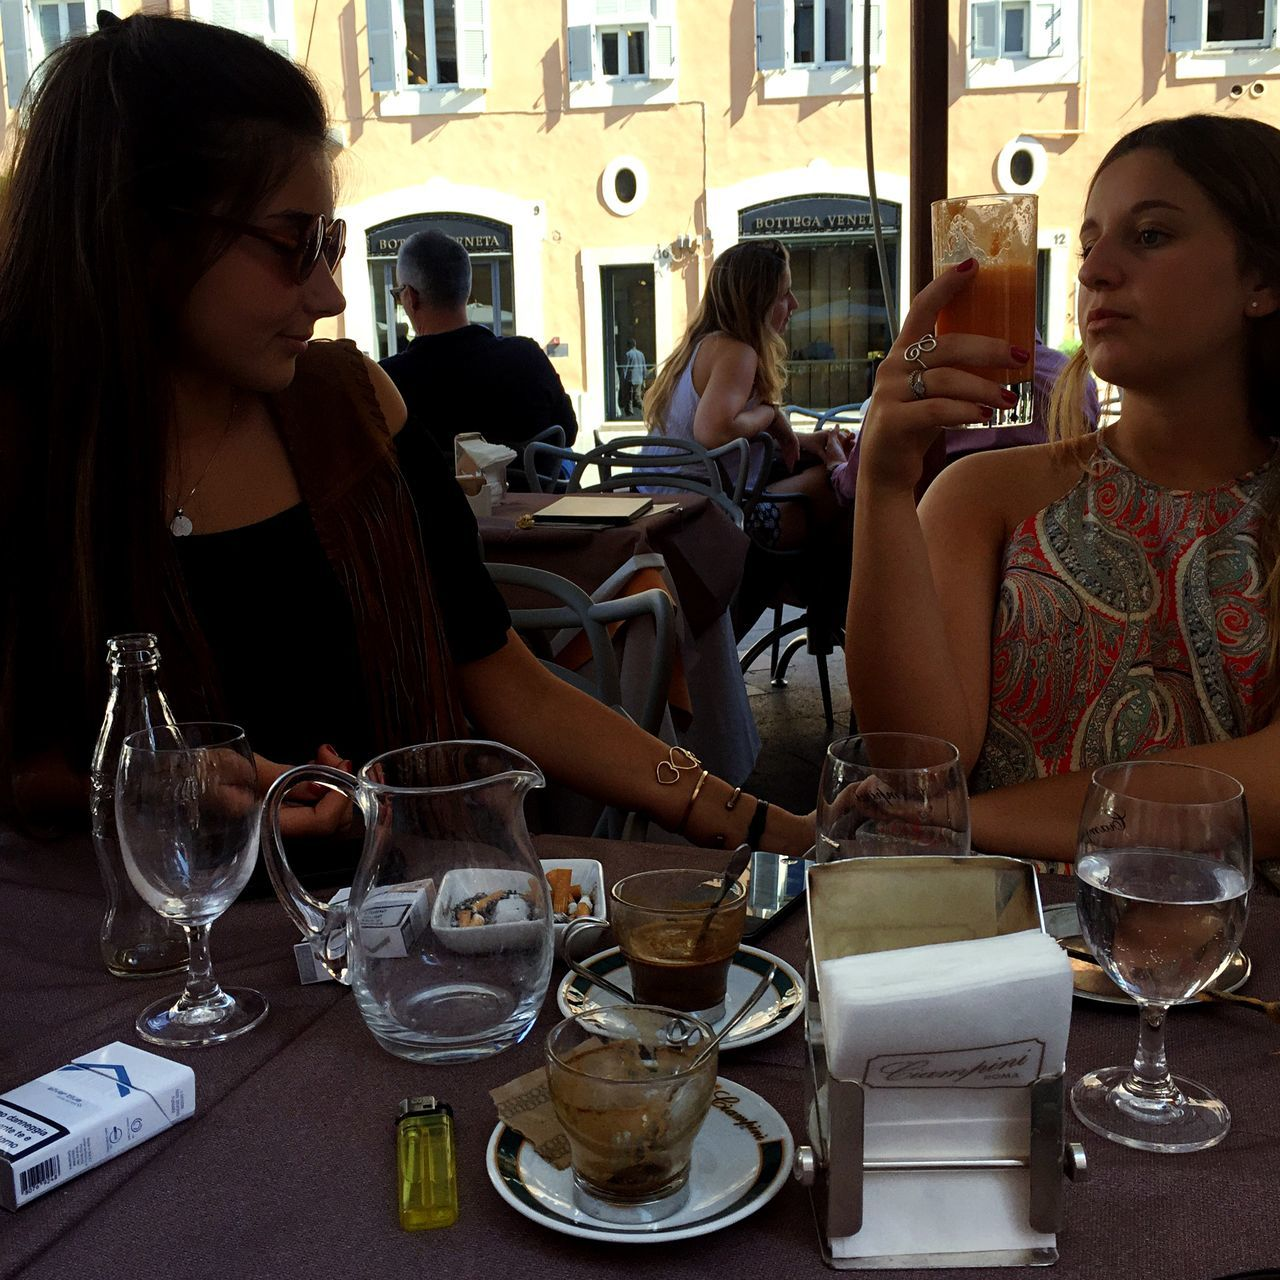 real people, wineglass, table, restaurant, two people, leisure activity, lifestyles, food and drink, women, wine, day, drink, togetherness, drinking glass, friendship, outdoors, sitting, men, building exterior, architecture, young women, young adult, adult, people